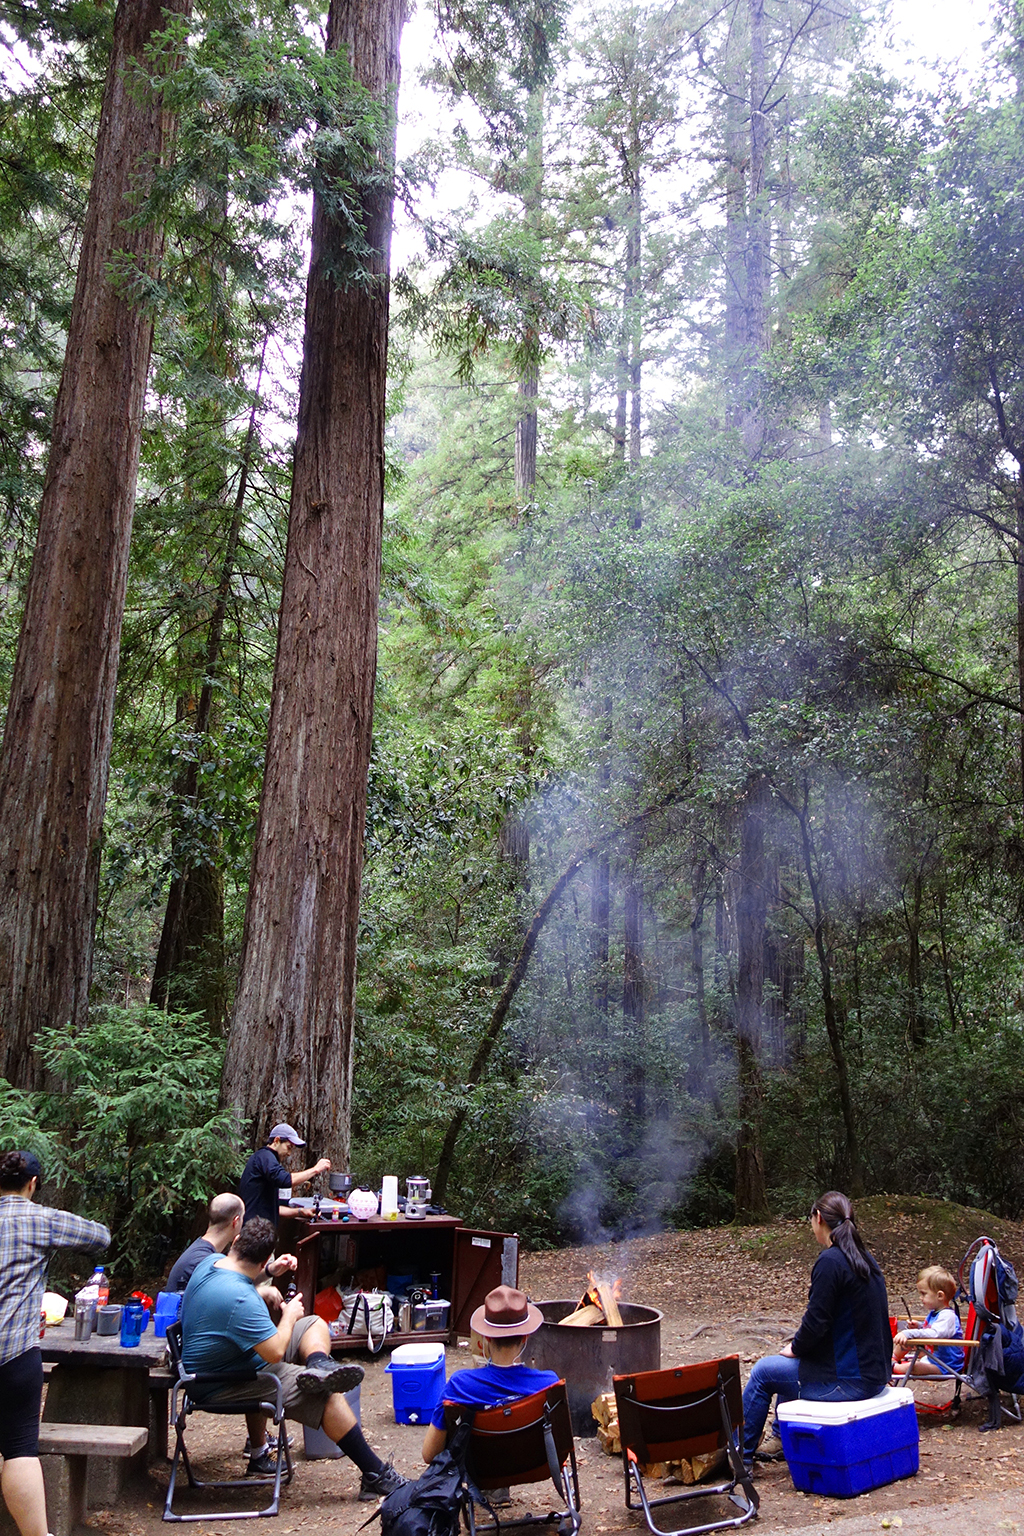 Fire at Portola Redwoods